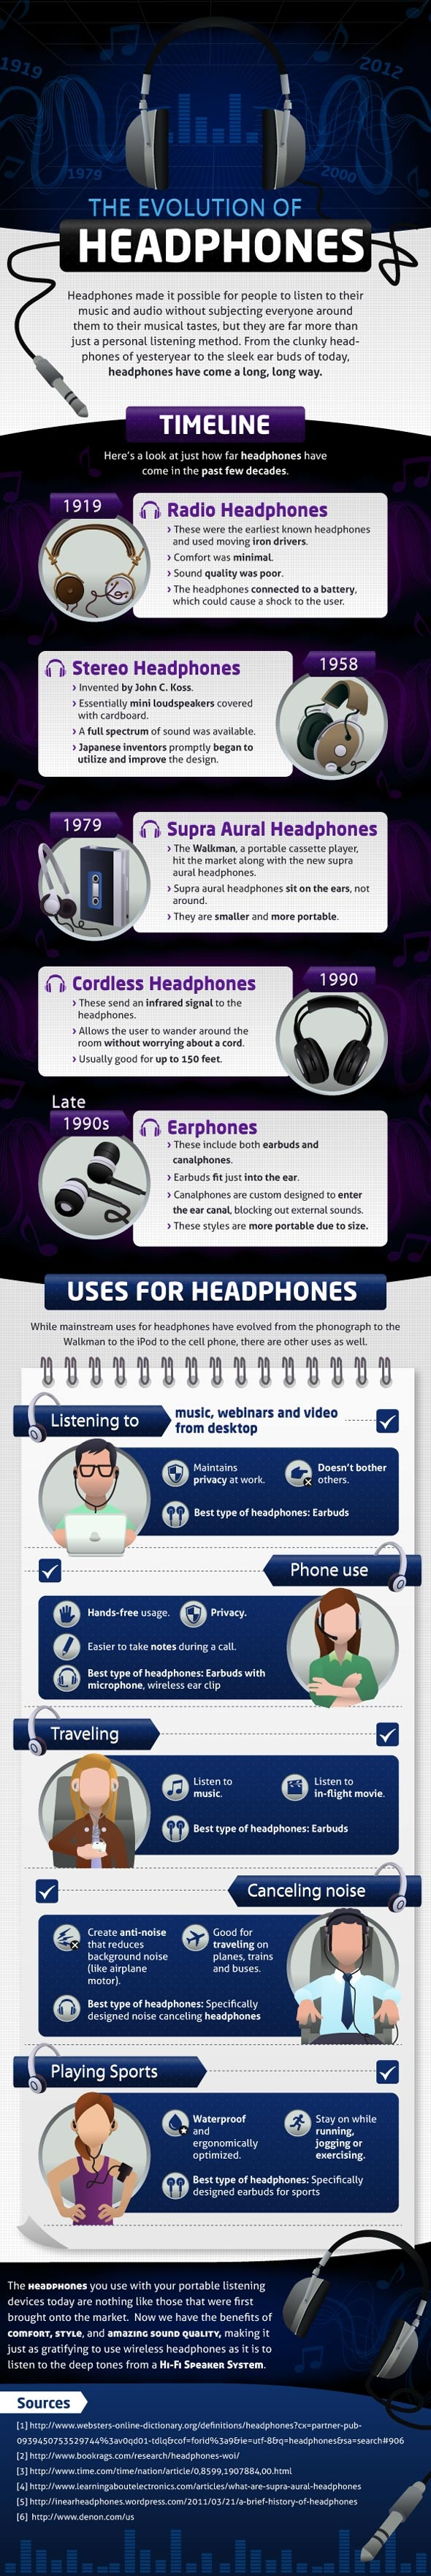 The timeline of headphones Another use for